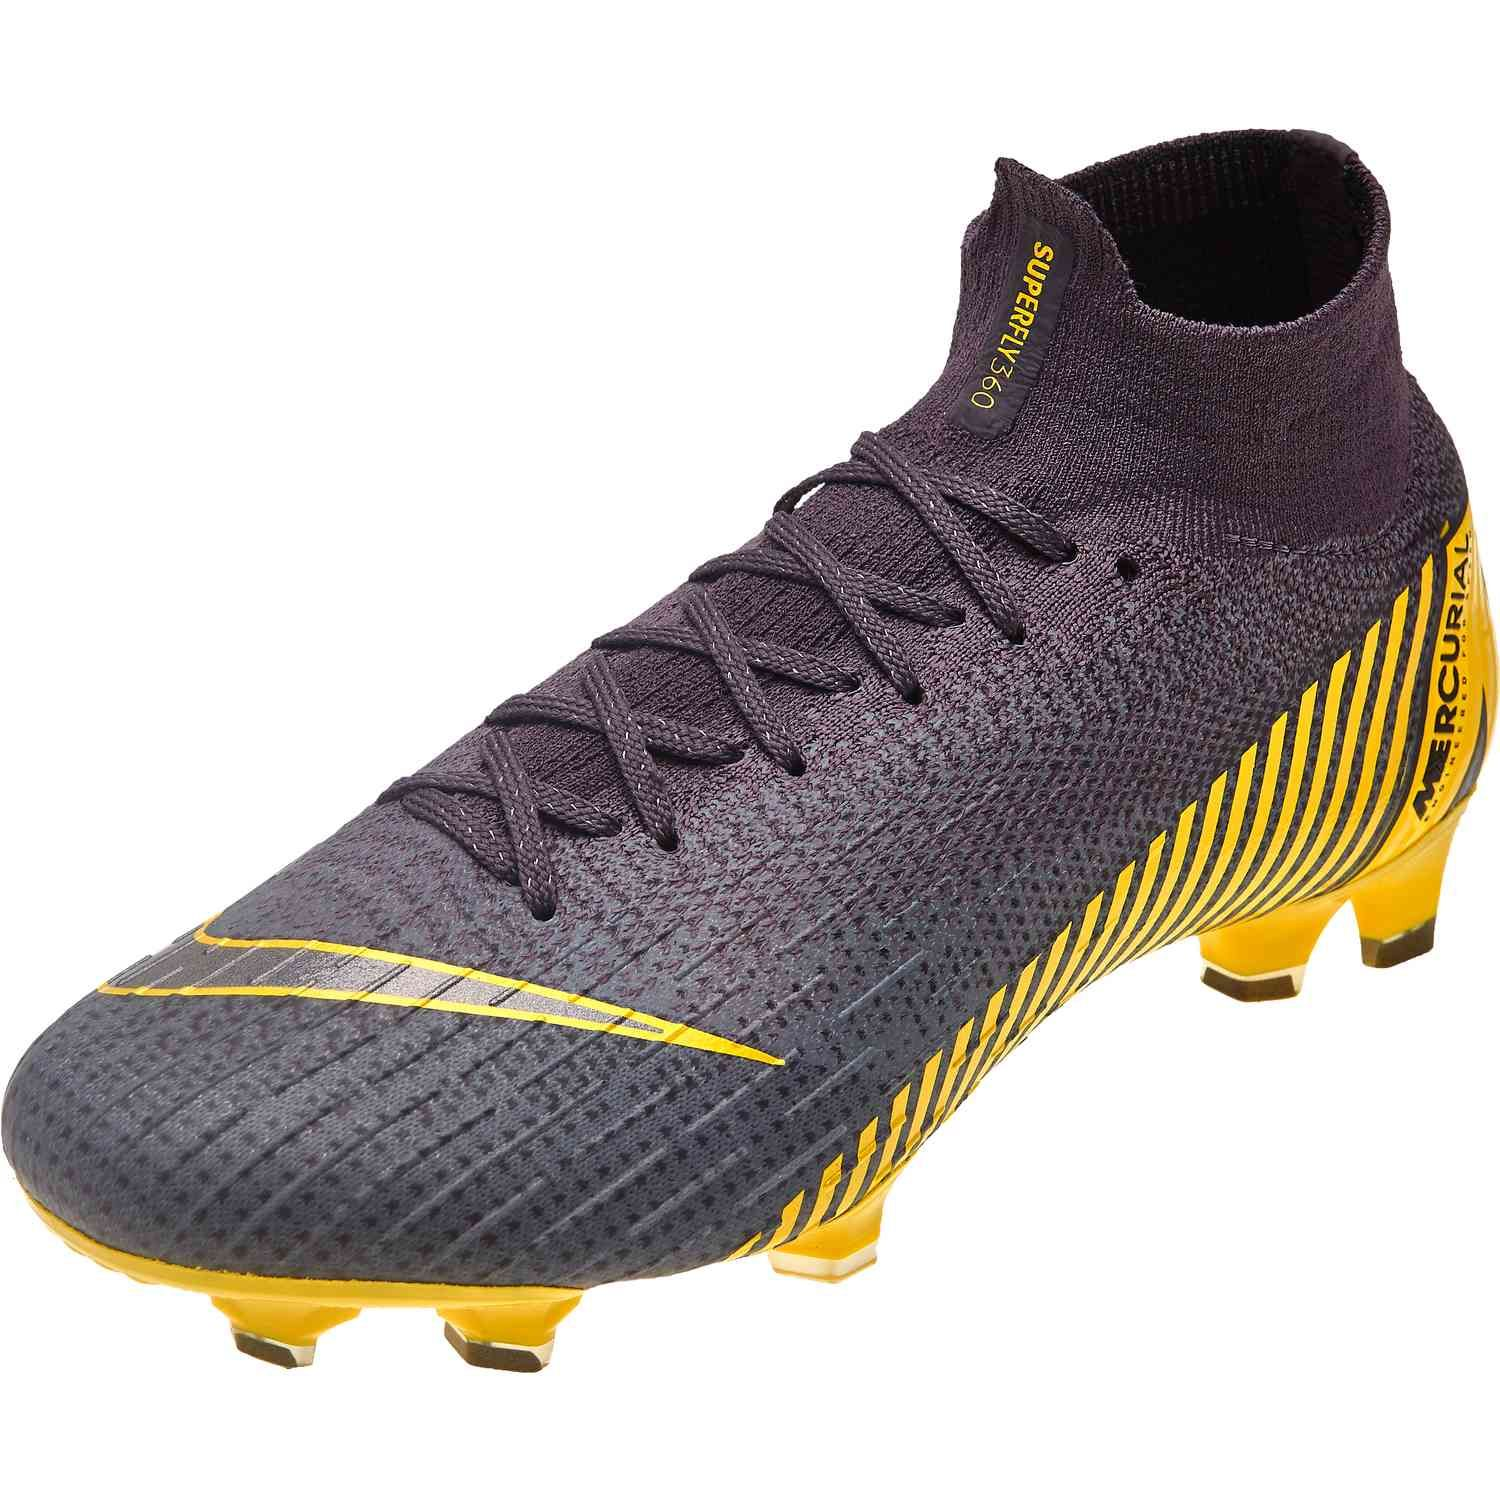 f1a19ac64 Buy the Nike Mercurial Superfly 6 Elite Game Over 2 shoe from soccerpro.com